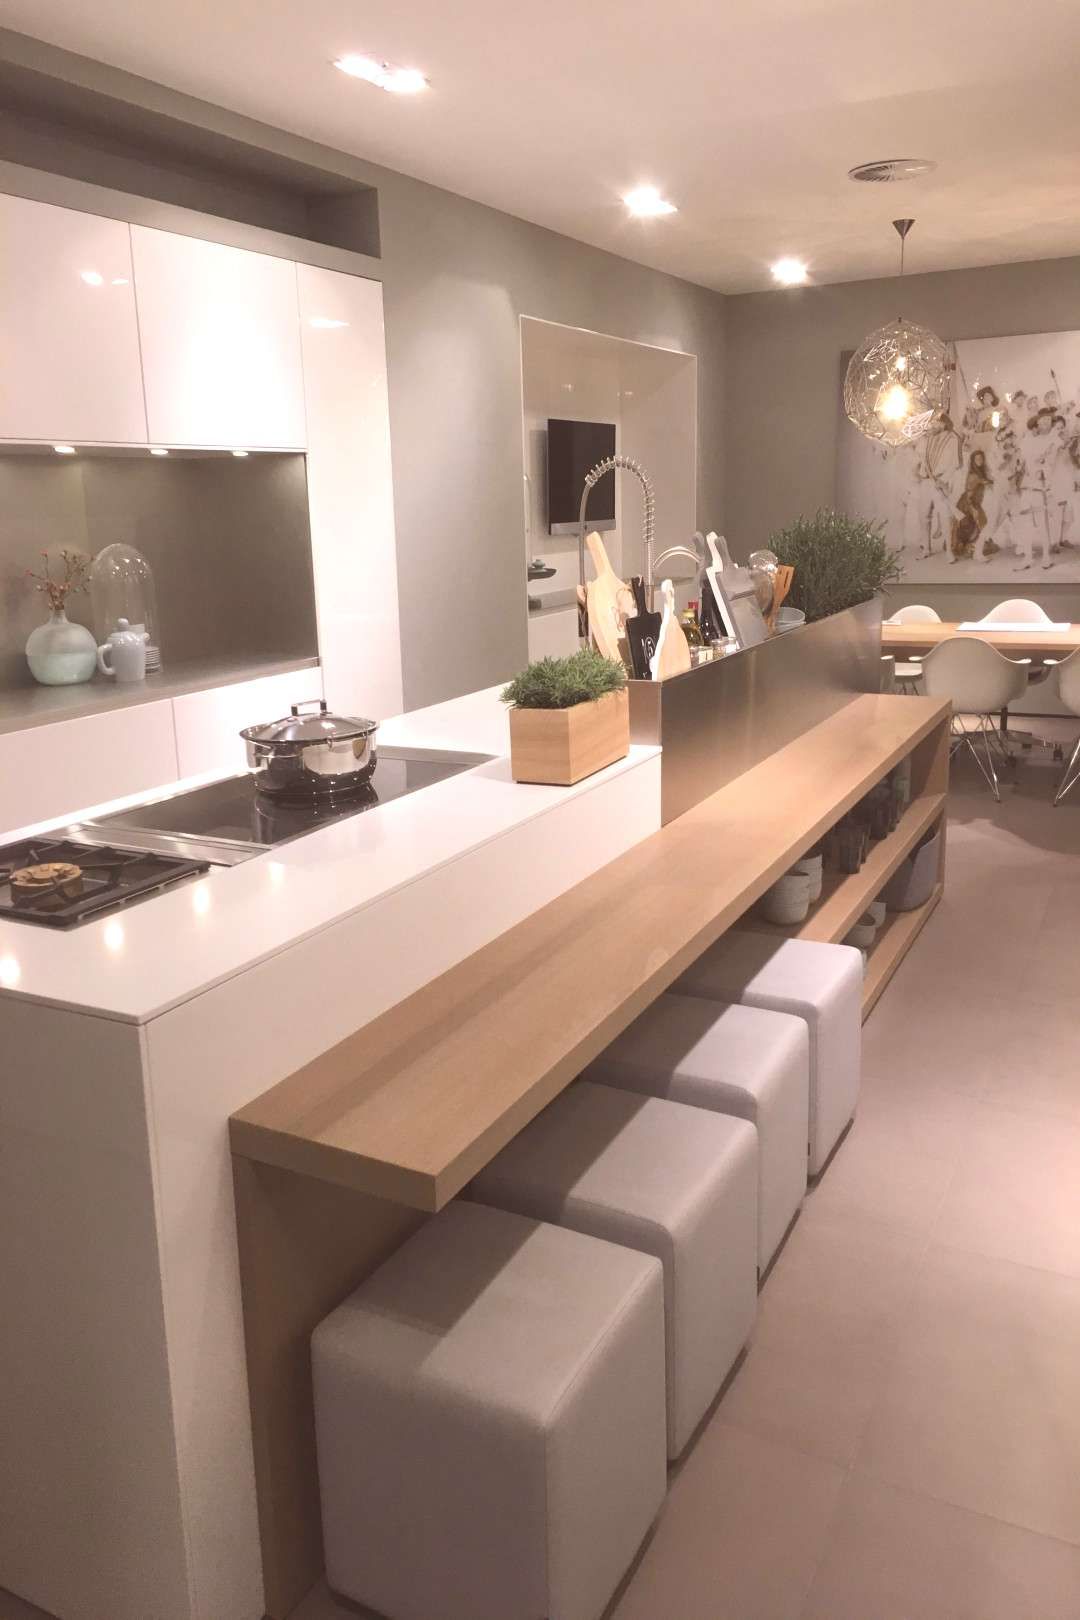 Modern kitchens use clever design and also smooth styles to produce an outstanding room to prepare,